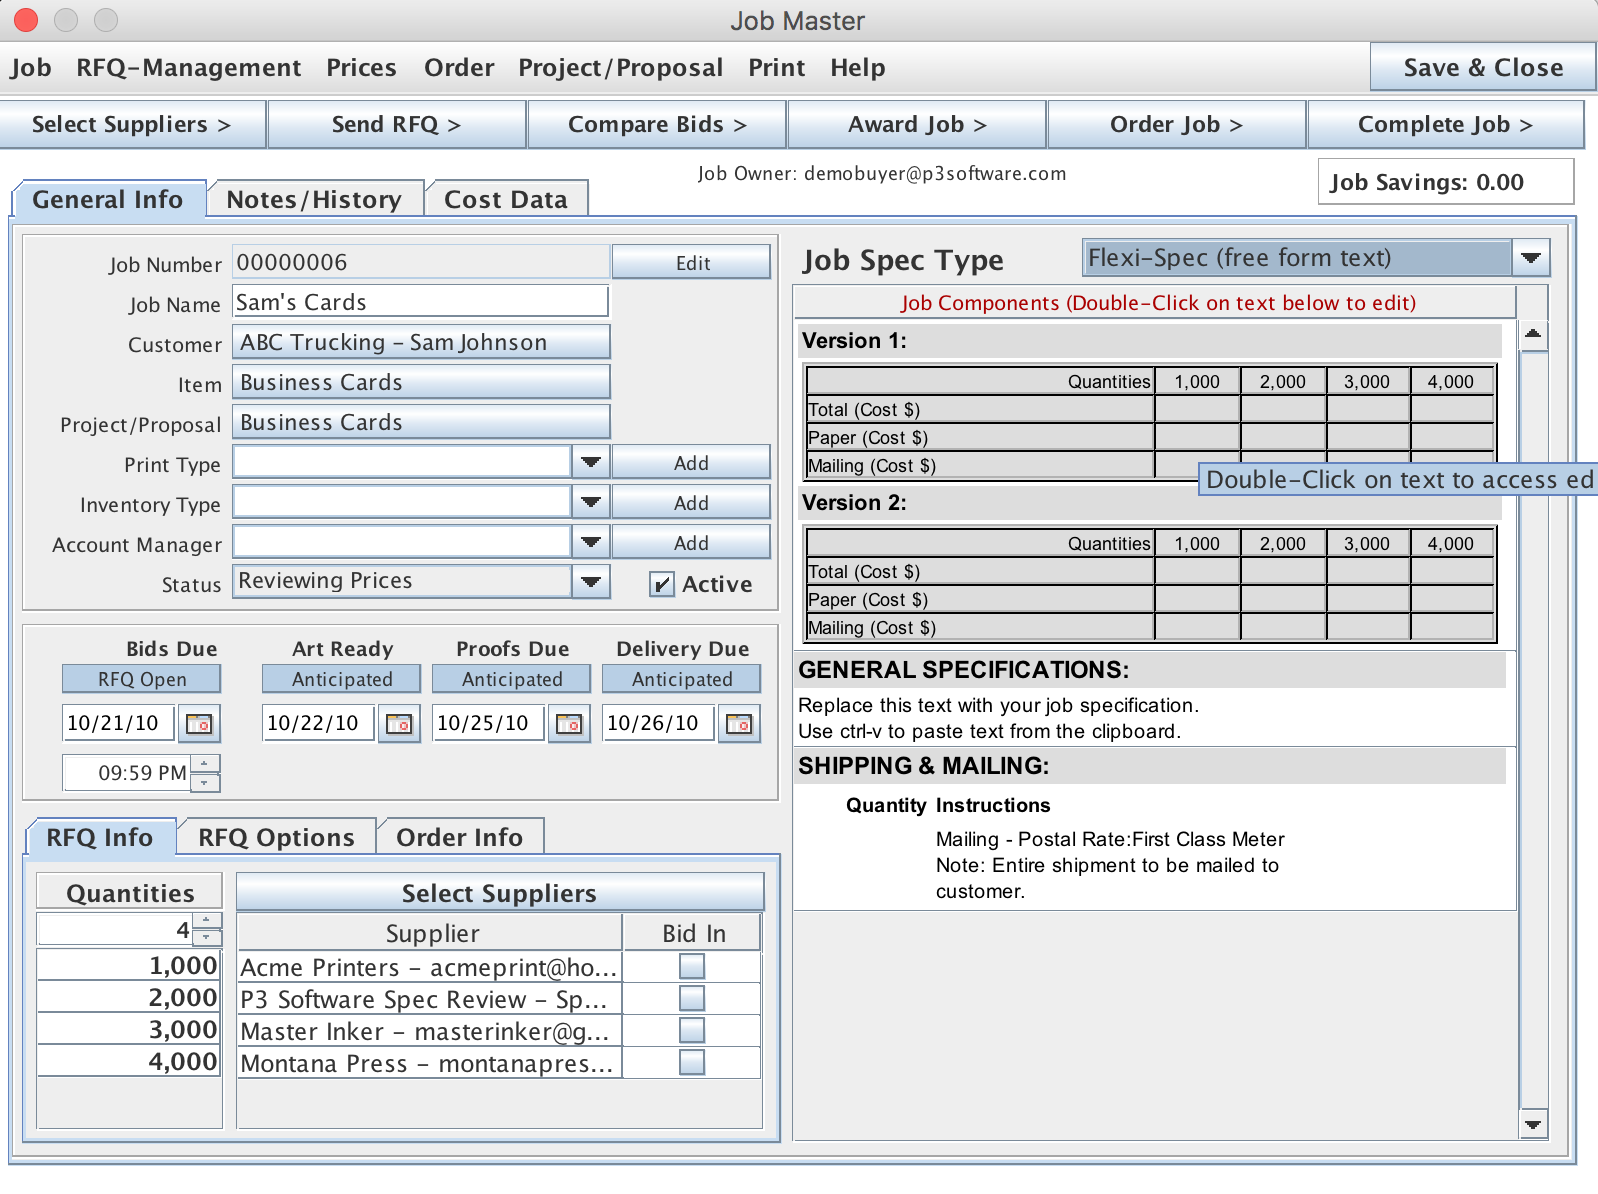 Job Master screen showing multiple versions and cost breakouts for an RFQ